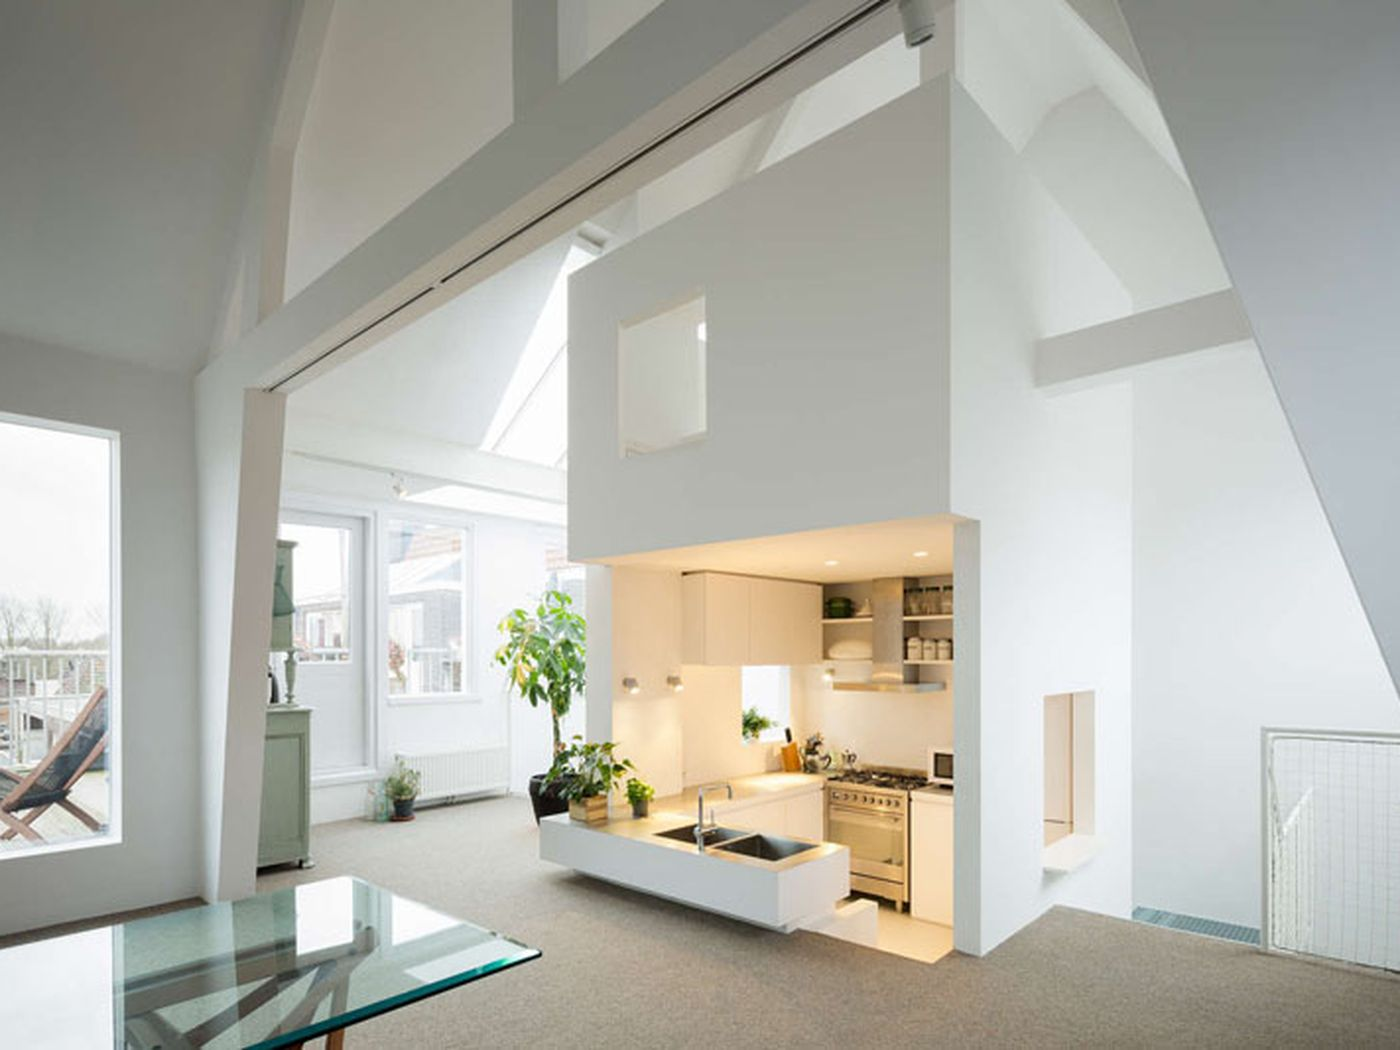 Revamp Transforms Apartment Into Airy Loft With a Cool Sunken ...